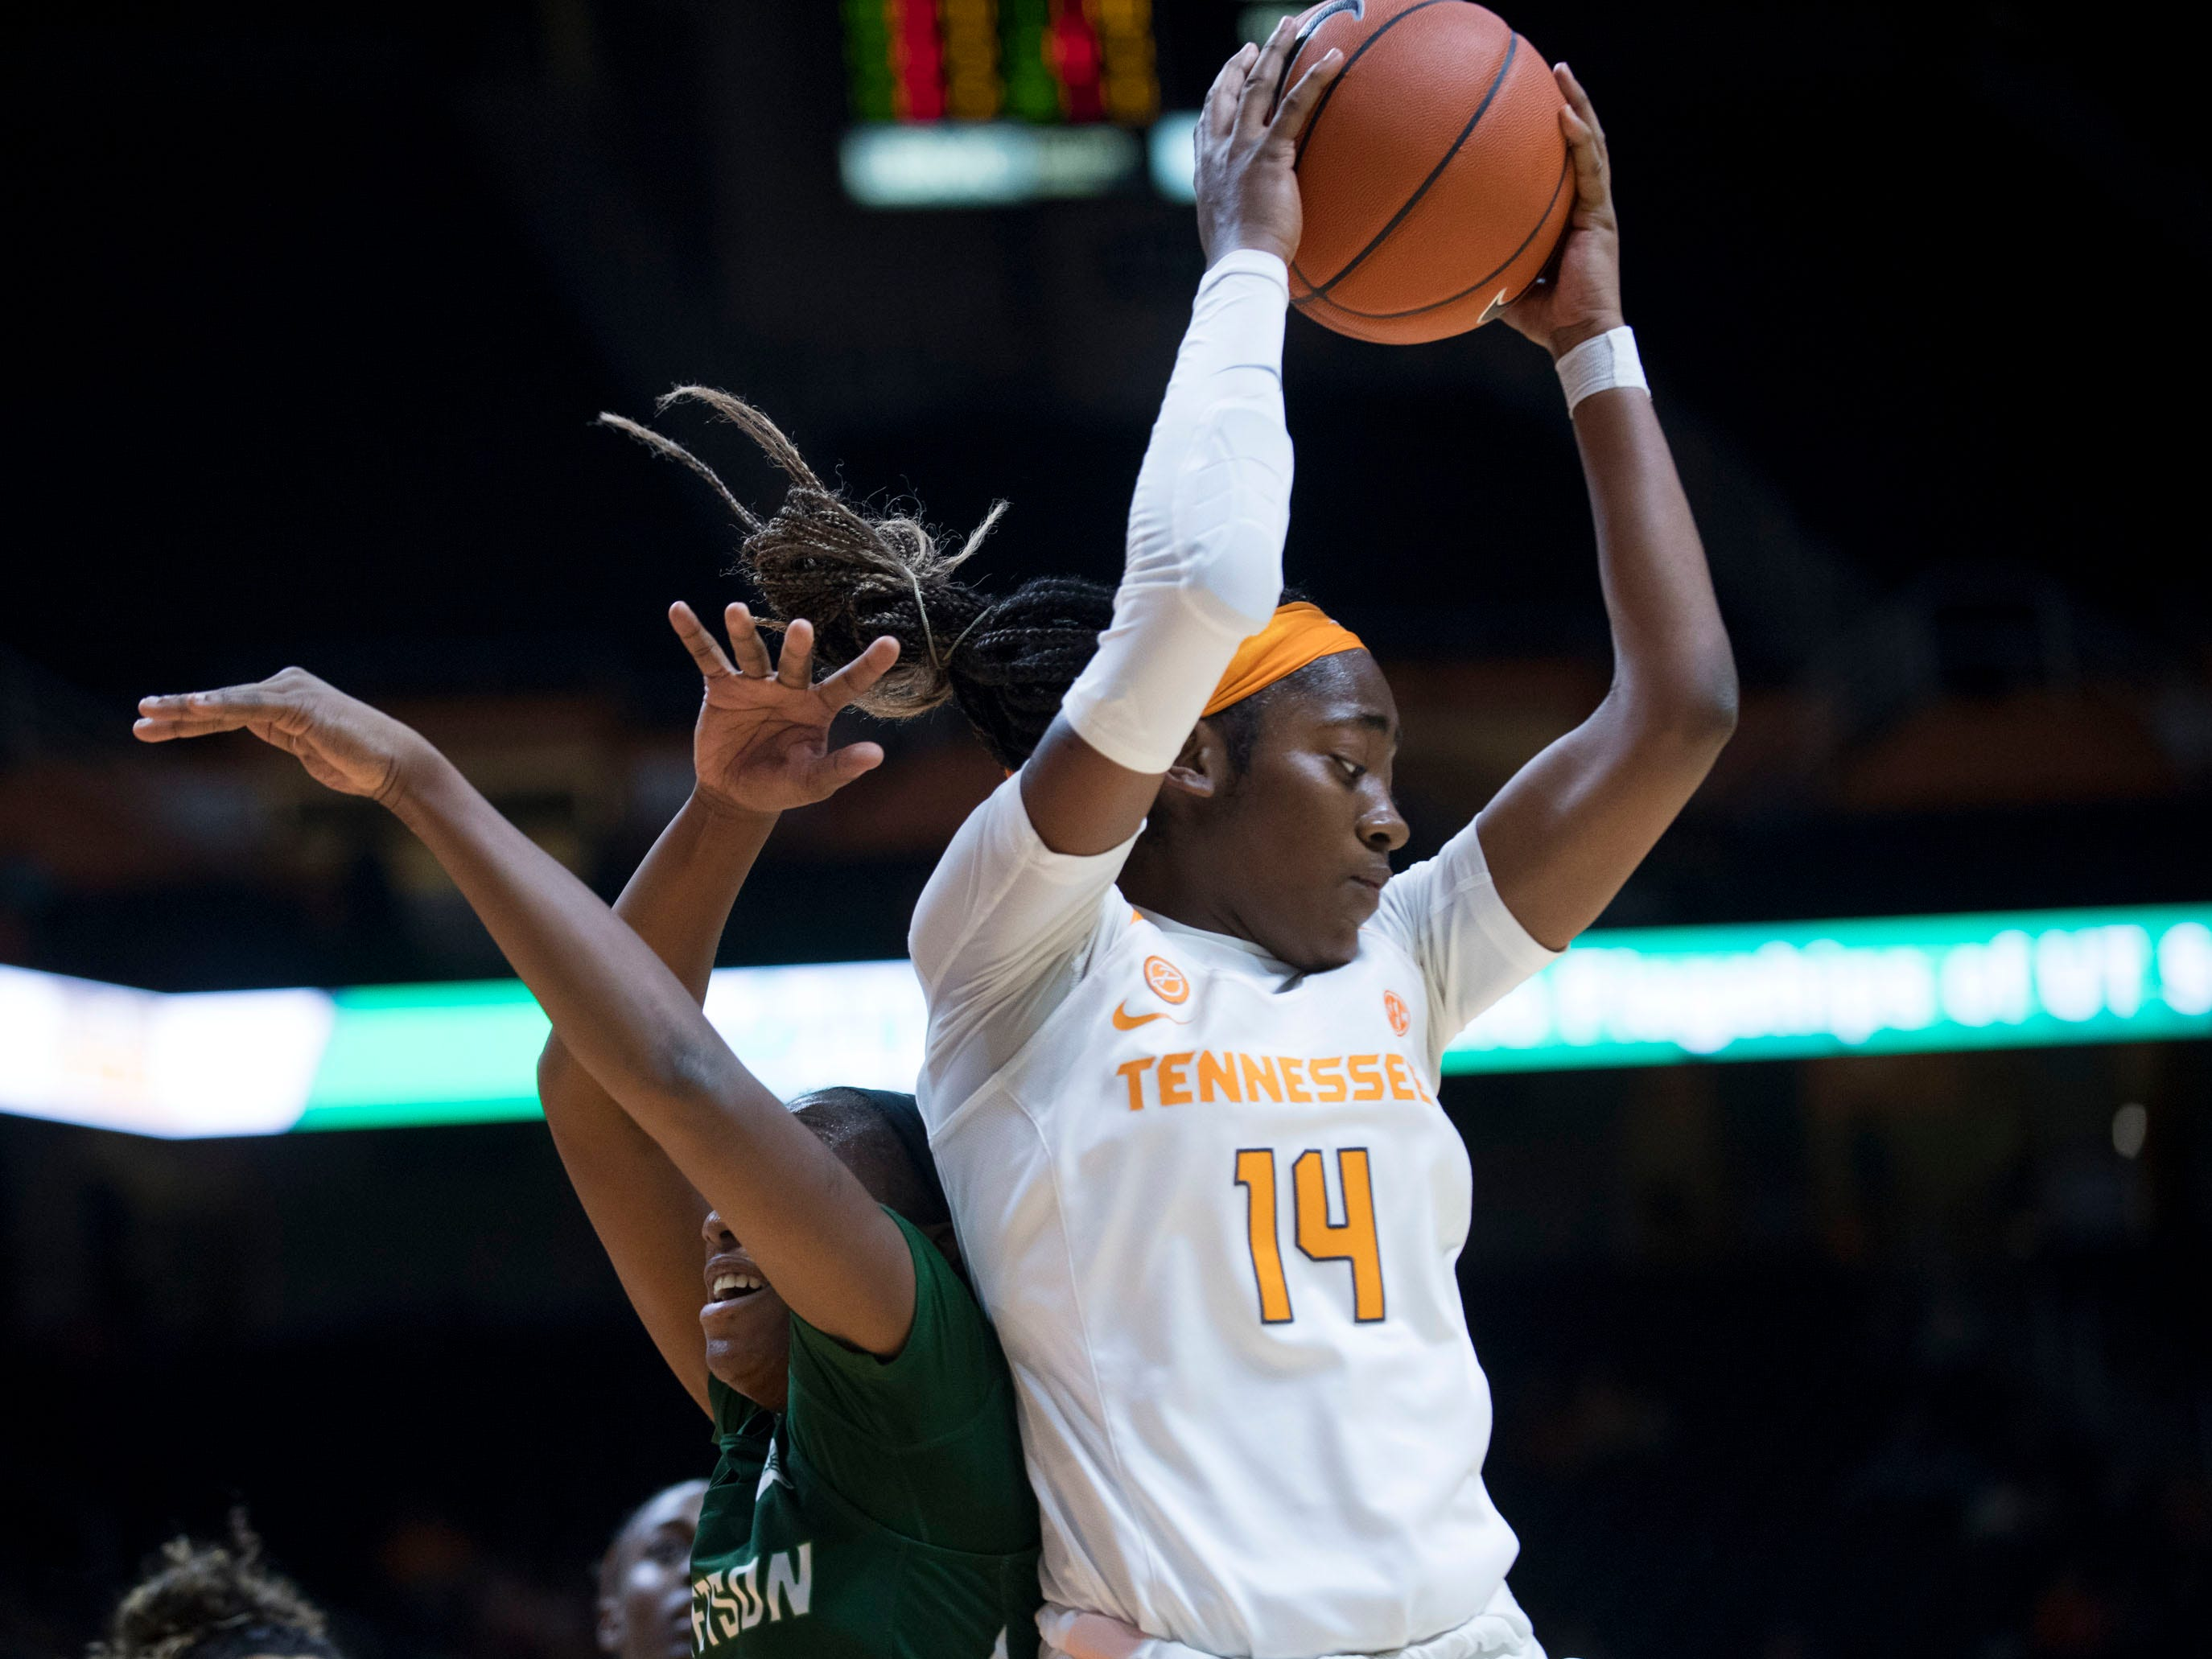 Tennessee's Zaay Green (14) gets the rebound over Stetson's Jon'Nita Henry (14) on Wednesday, December 5, 2018.